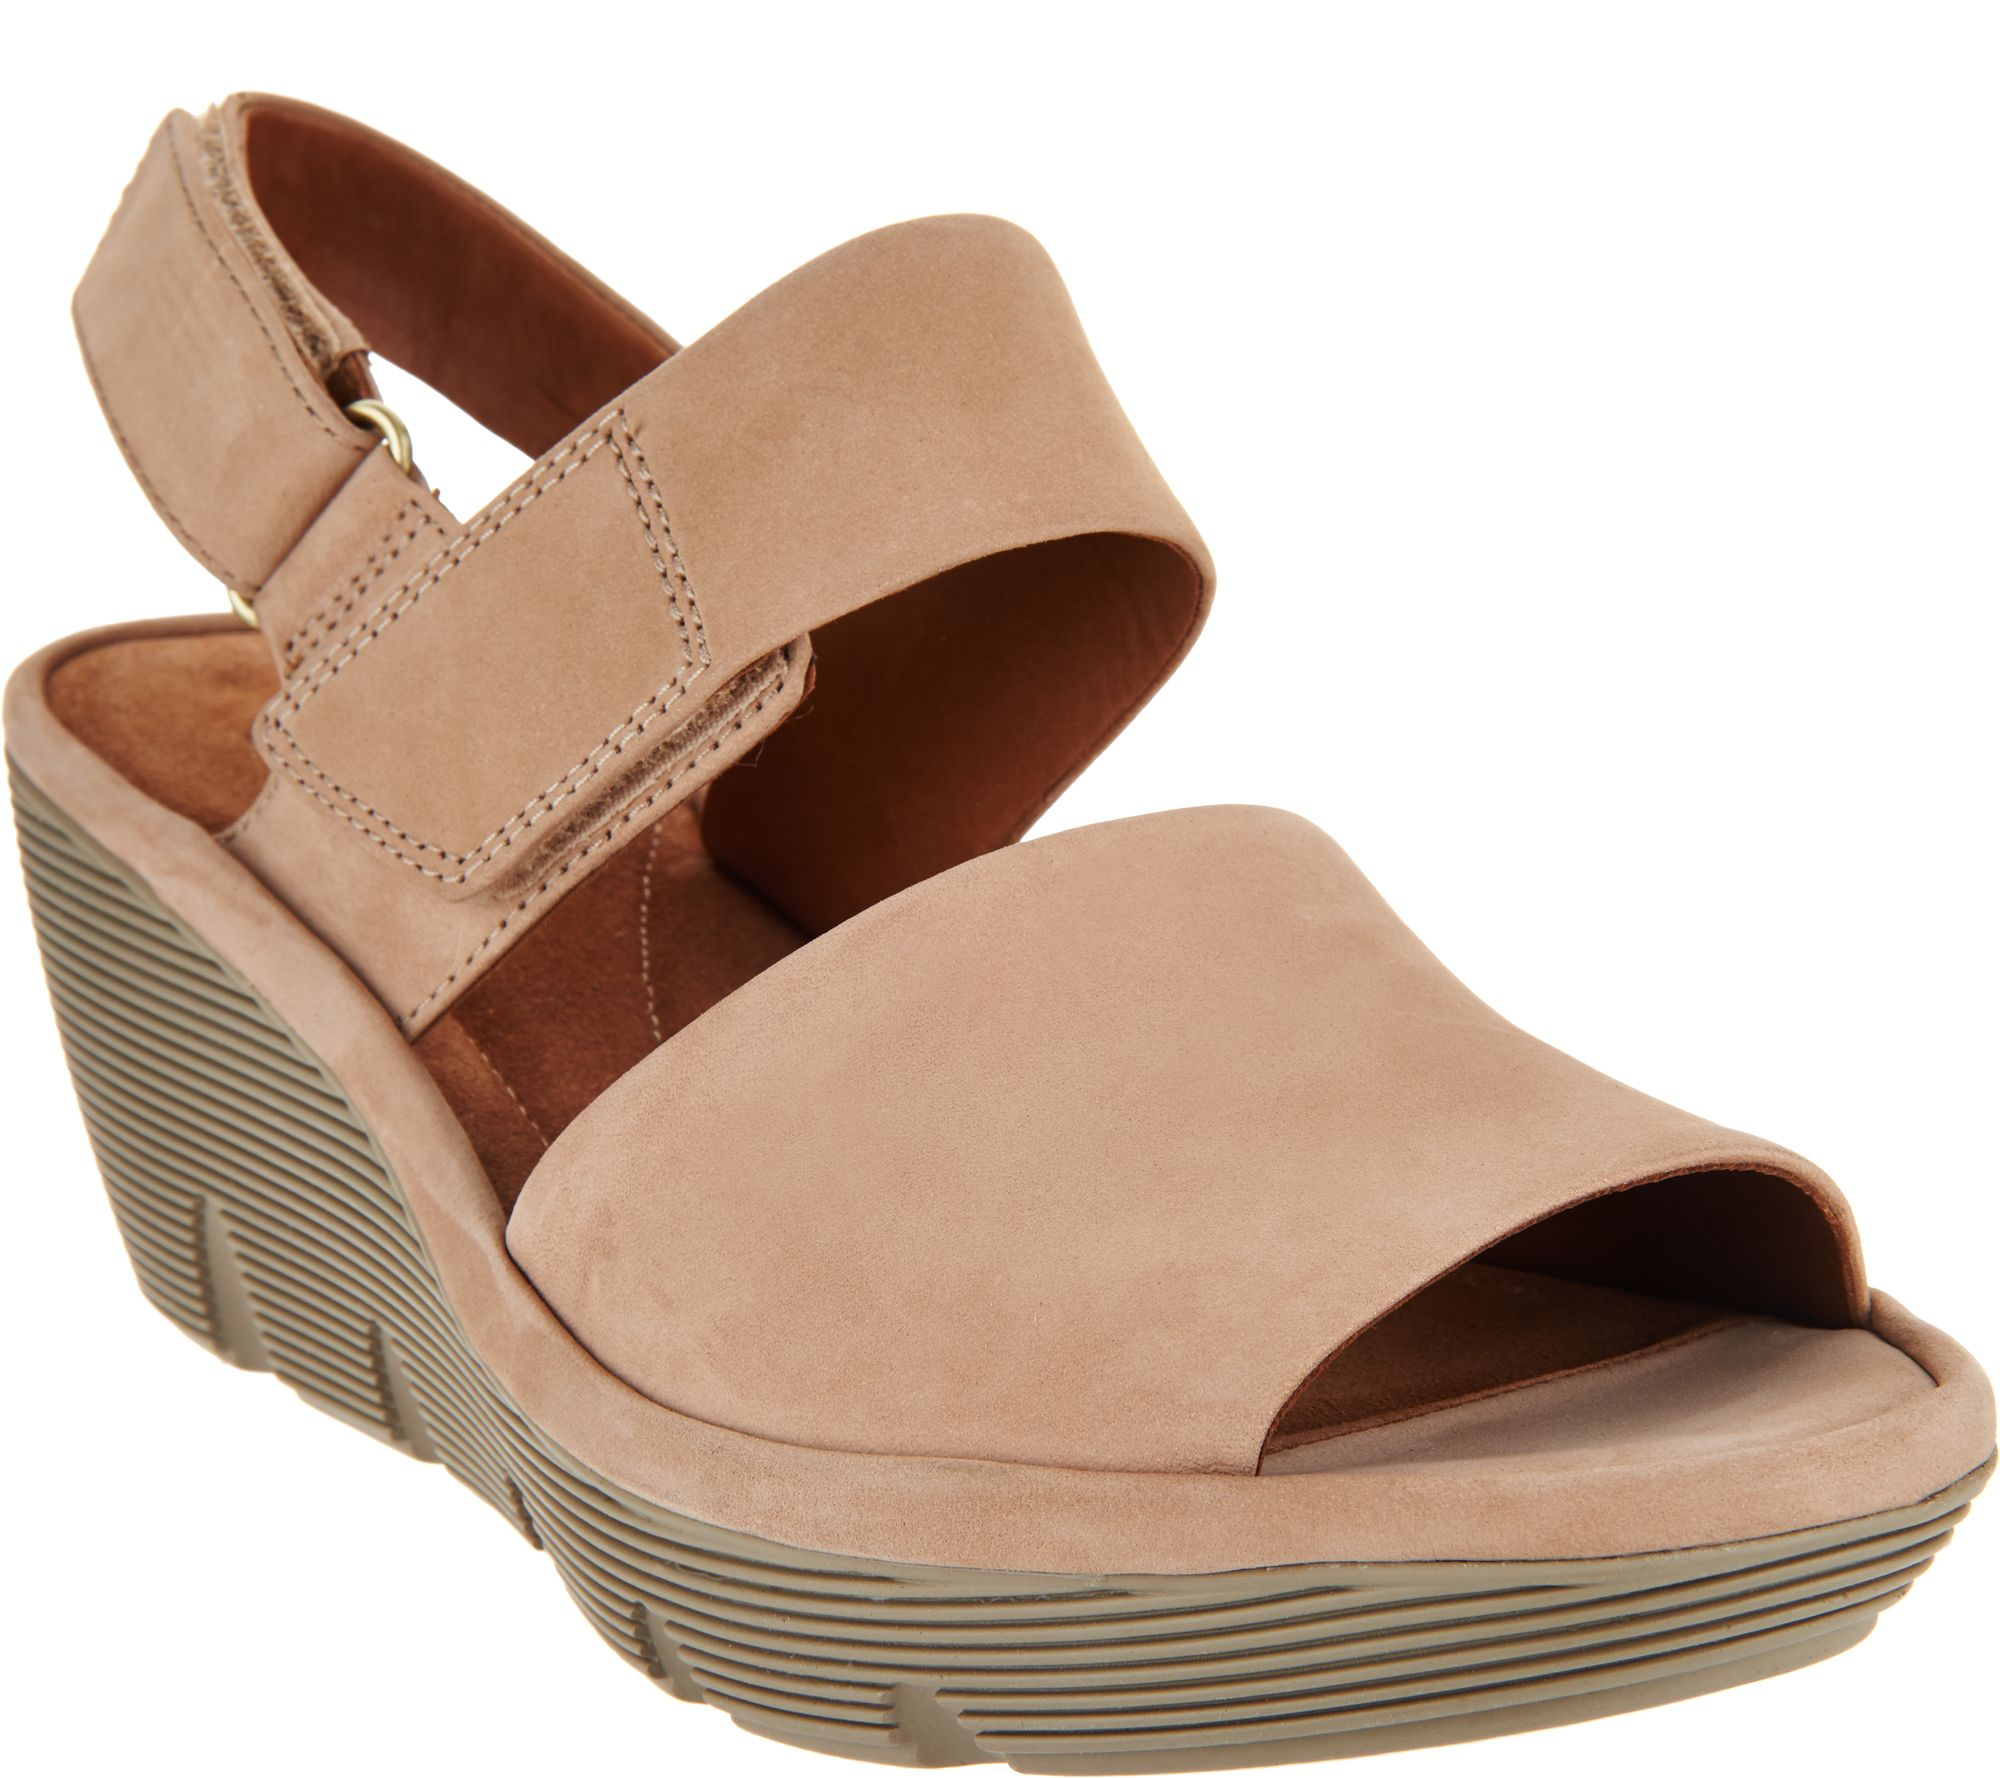 61710b3bbff Clarks Artisan Leather Wedge Sandals - Clarene Allure - Page 1 — QVC.com